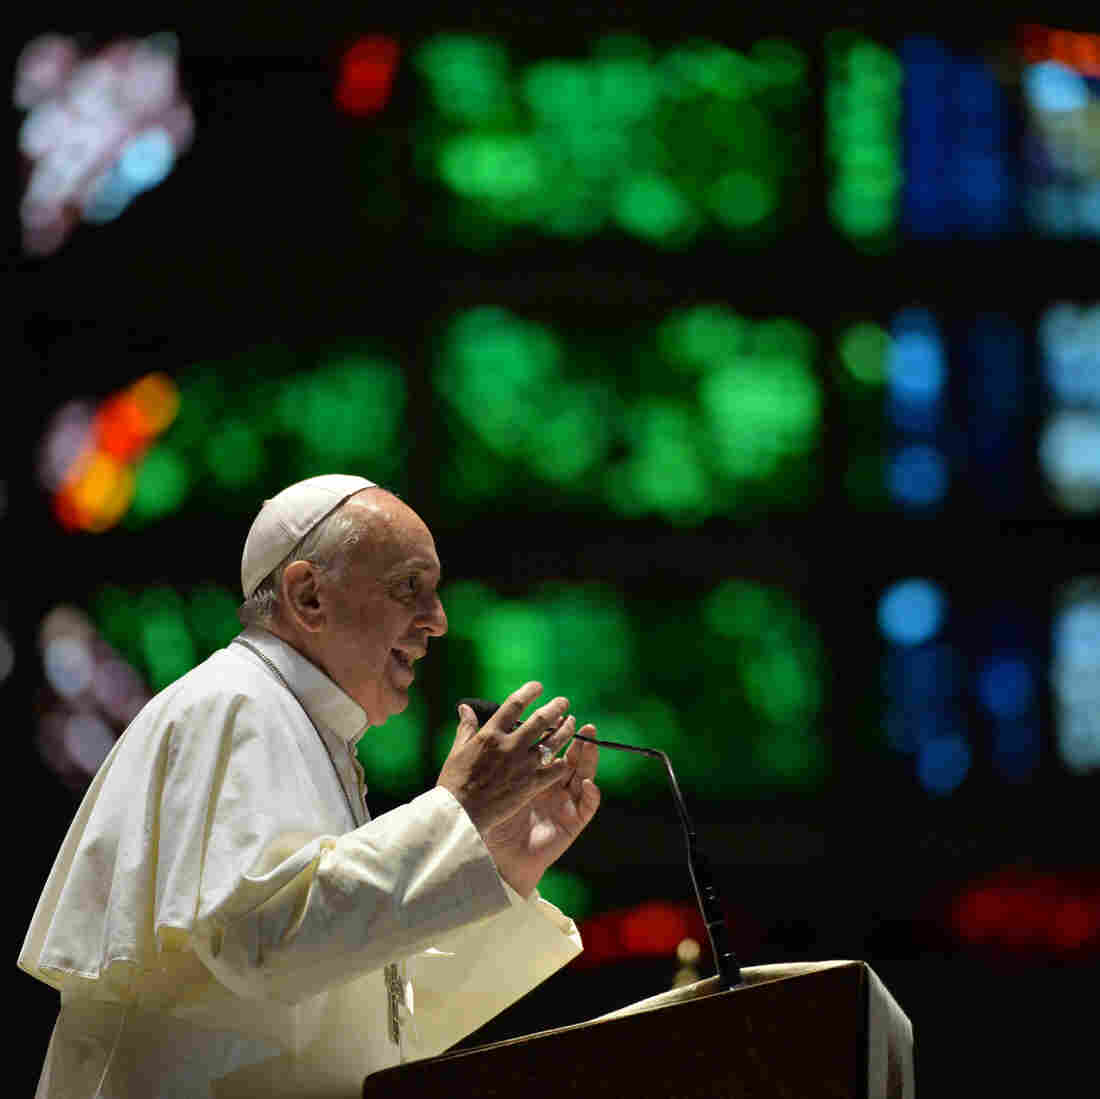 Pope Francis speaks during a gathering with Argentine youths at the Metropolitan Cathedral of Rio de Janeiro, on Thrusday. Pope Francis urged young Brazilians not to despair in the battle against corruption Thursday as he addressed their country's political problems in the wake of massive protests.